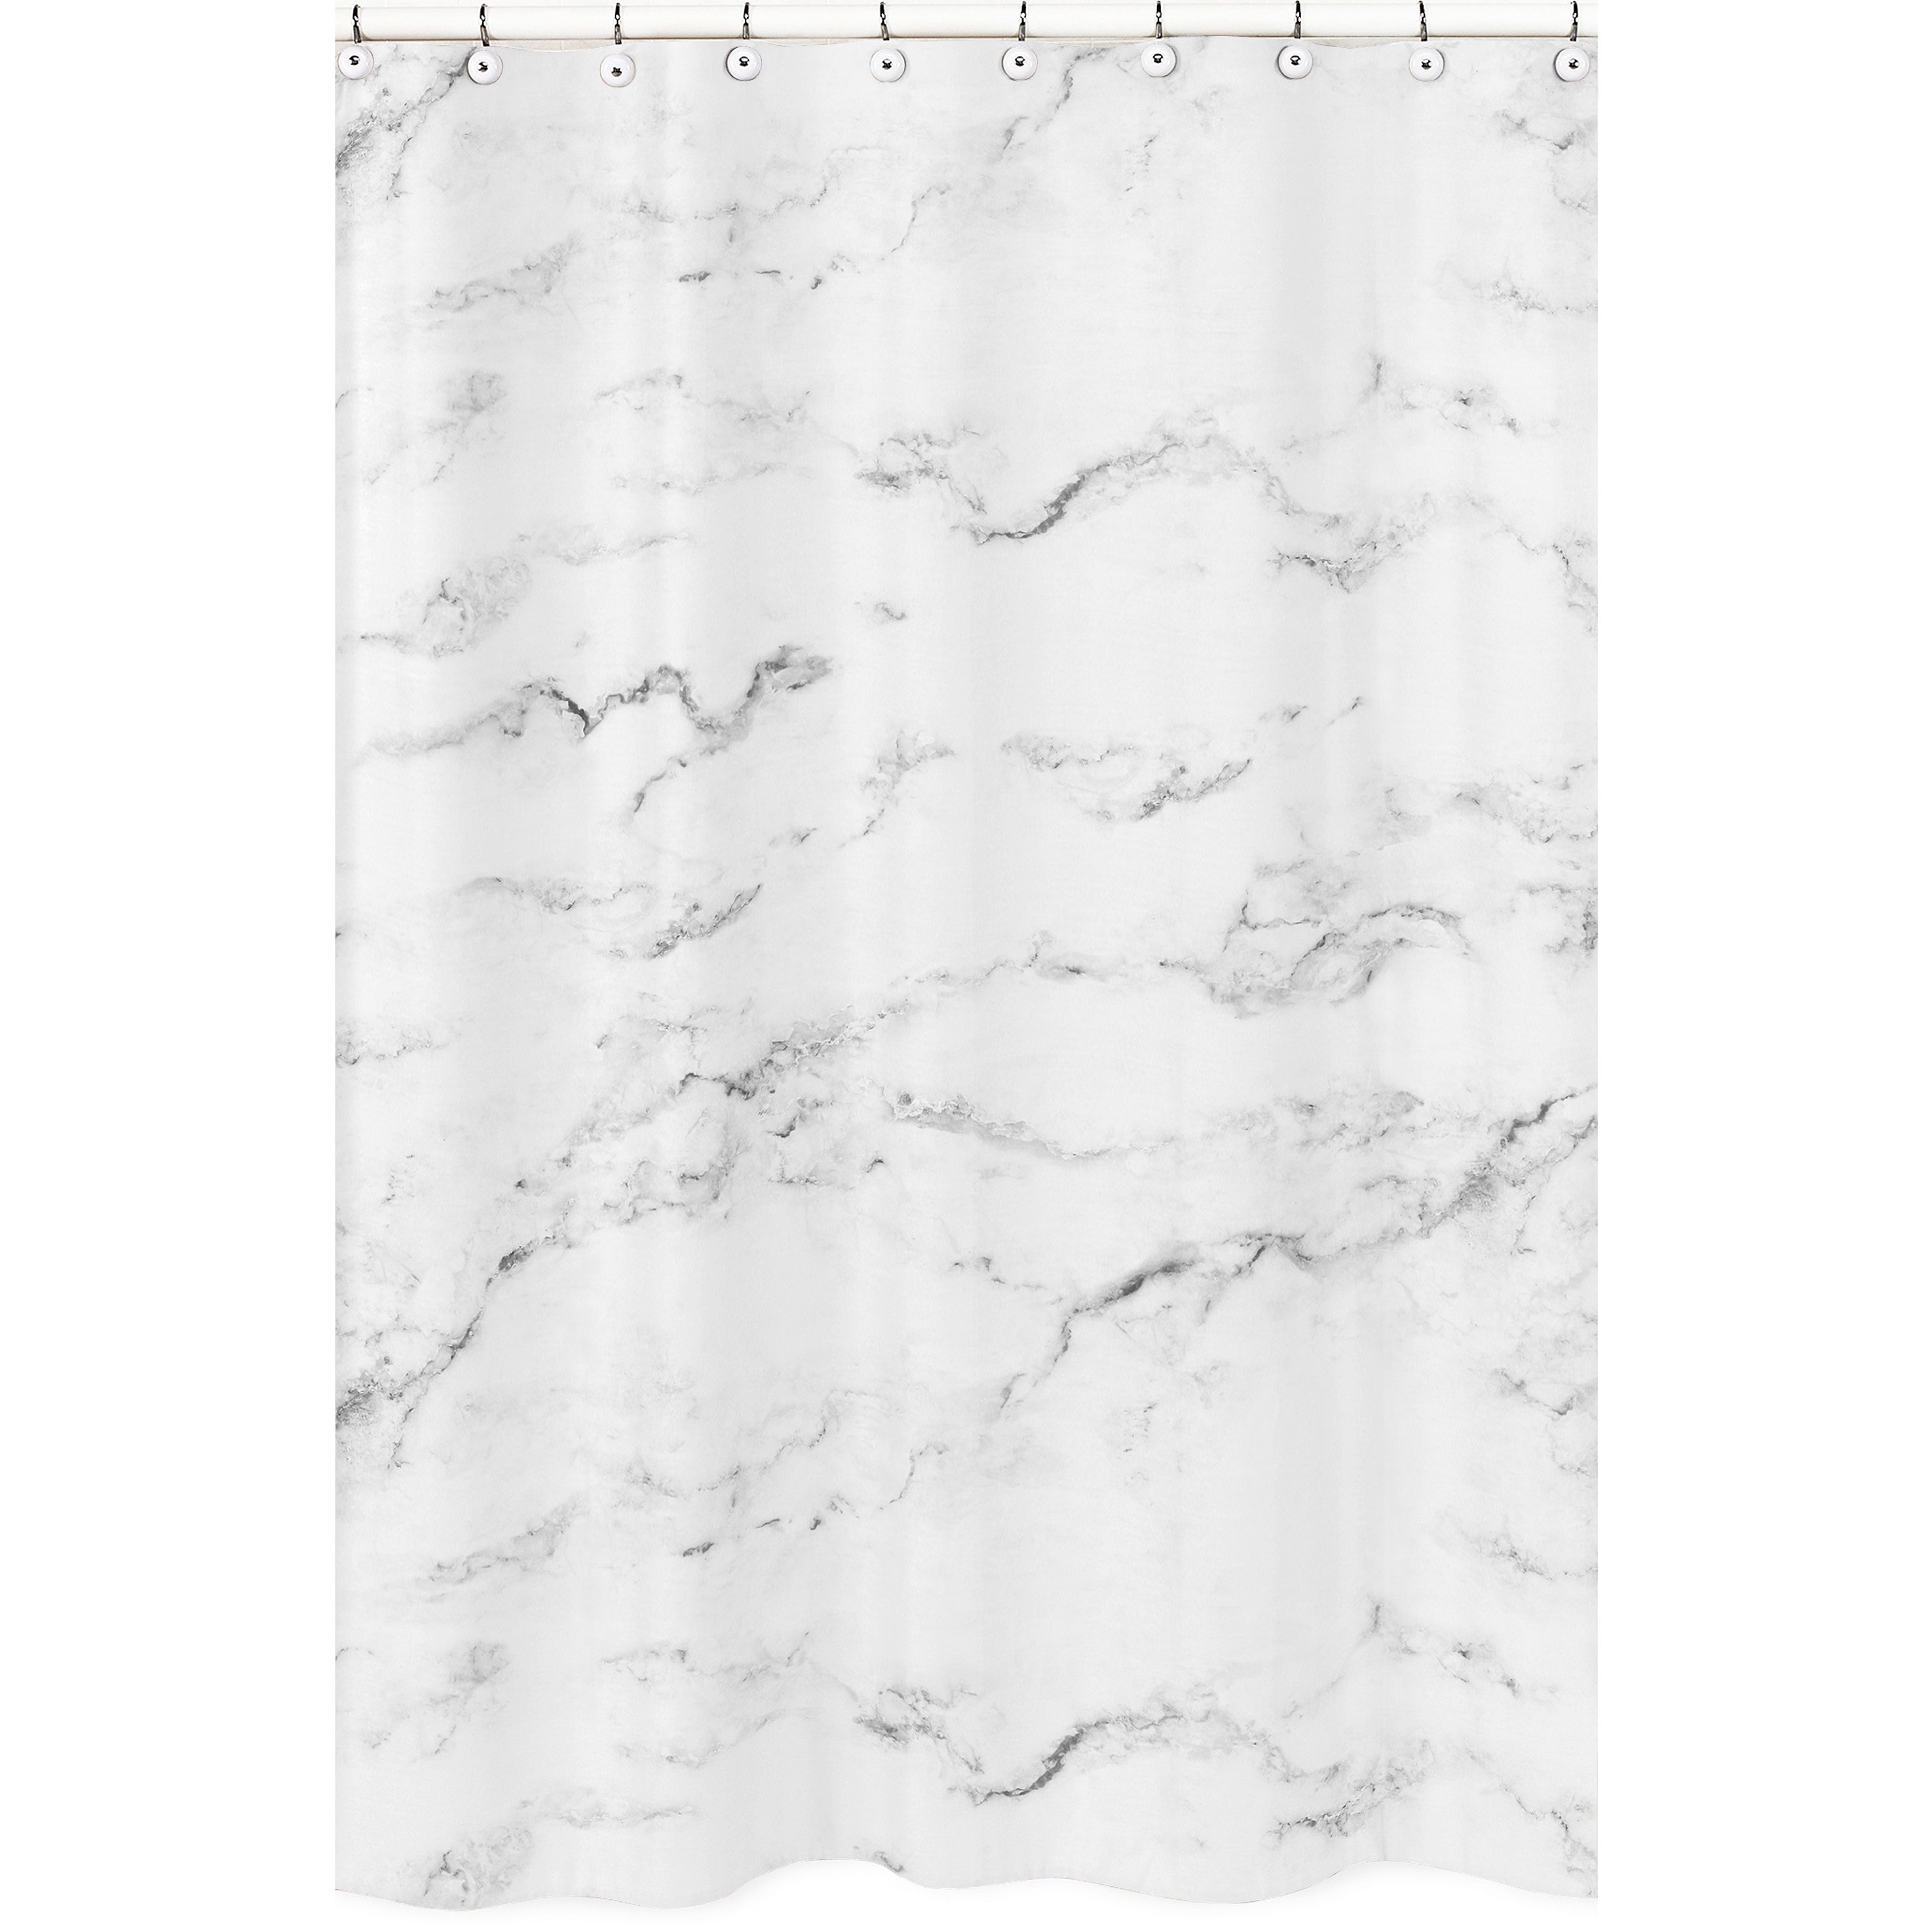 JoJo Designs Shower Curtain for the Black and White Marbl...